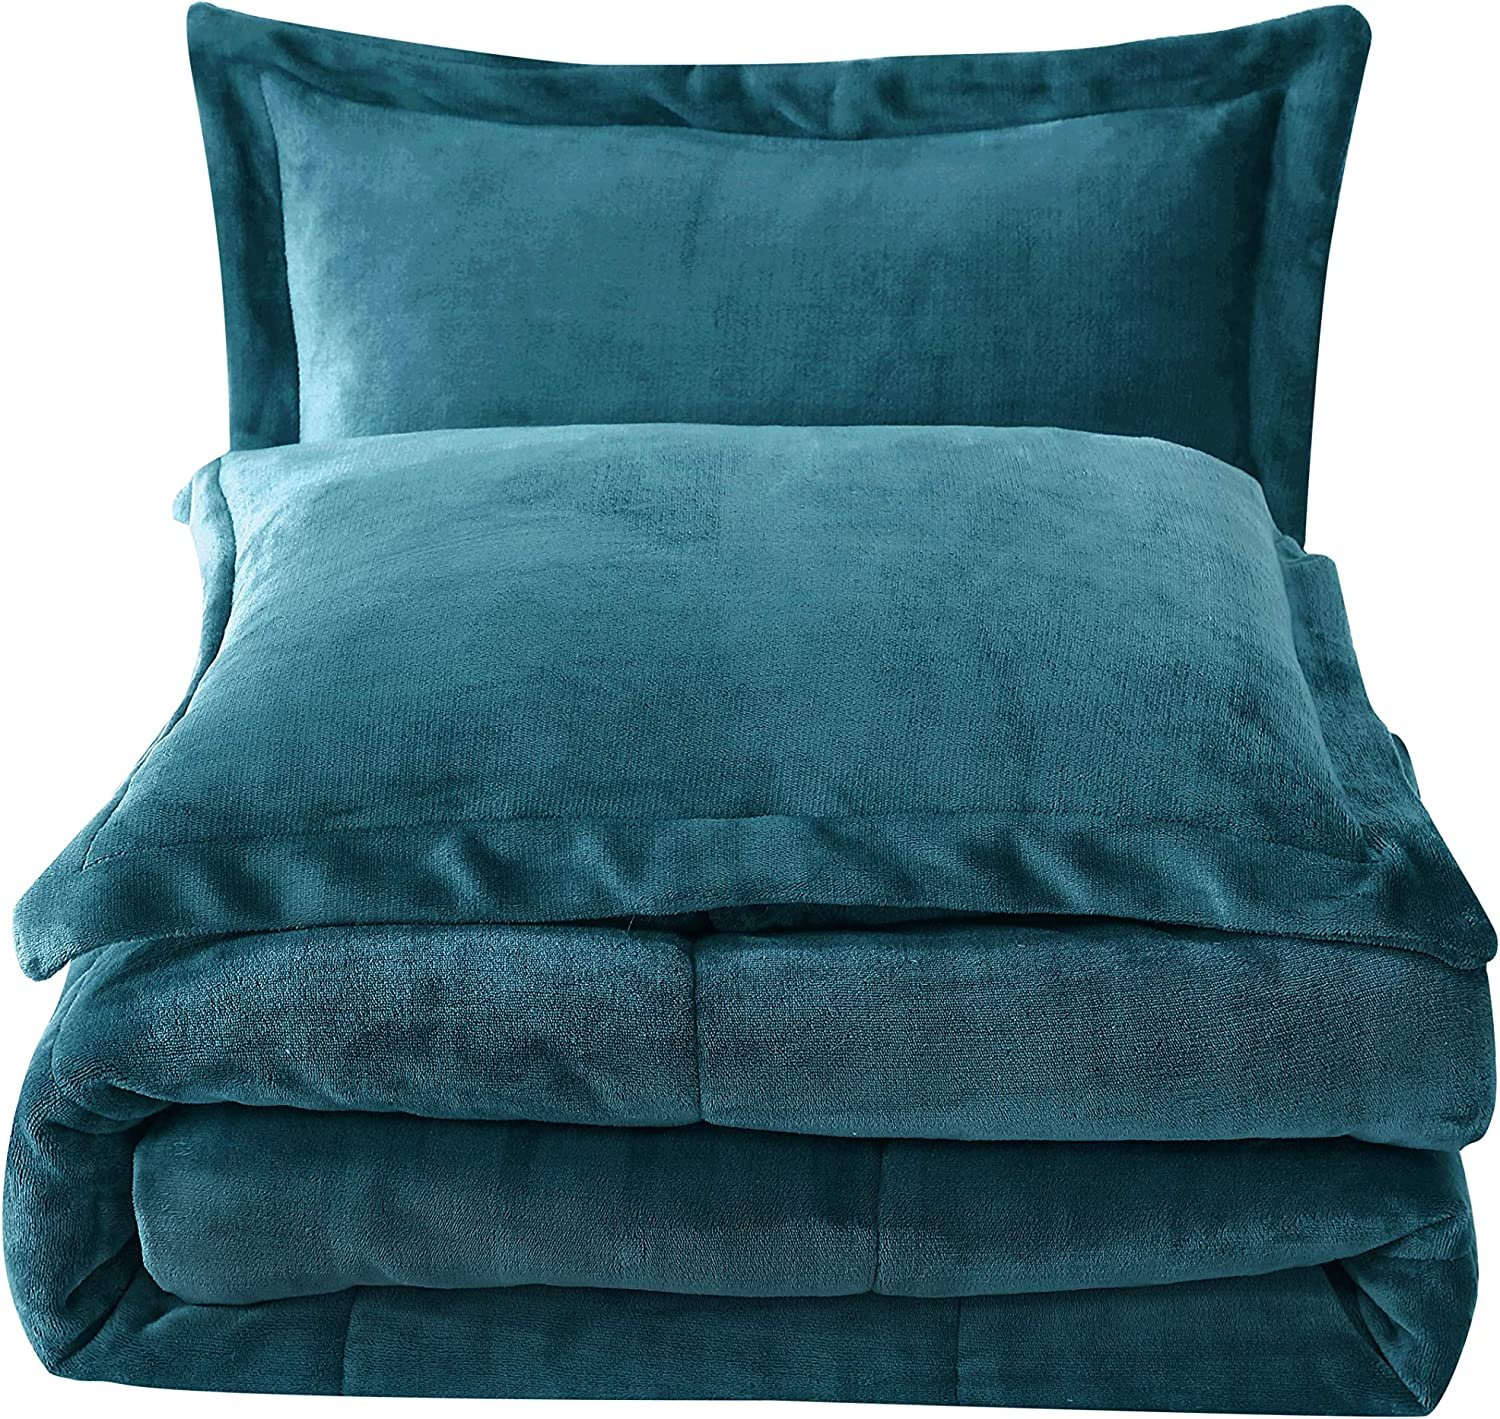 Chezmoi Collection 3-Piece Micromink Sherpa Reversible Down Alternative Comforter Set (Queen, Teal)